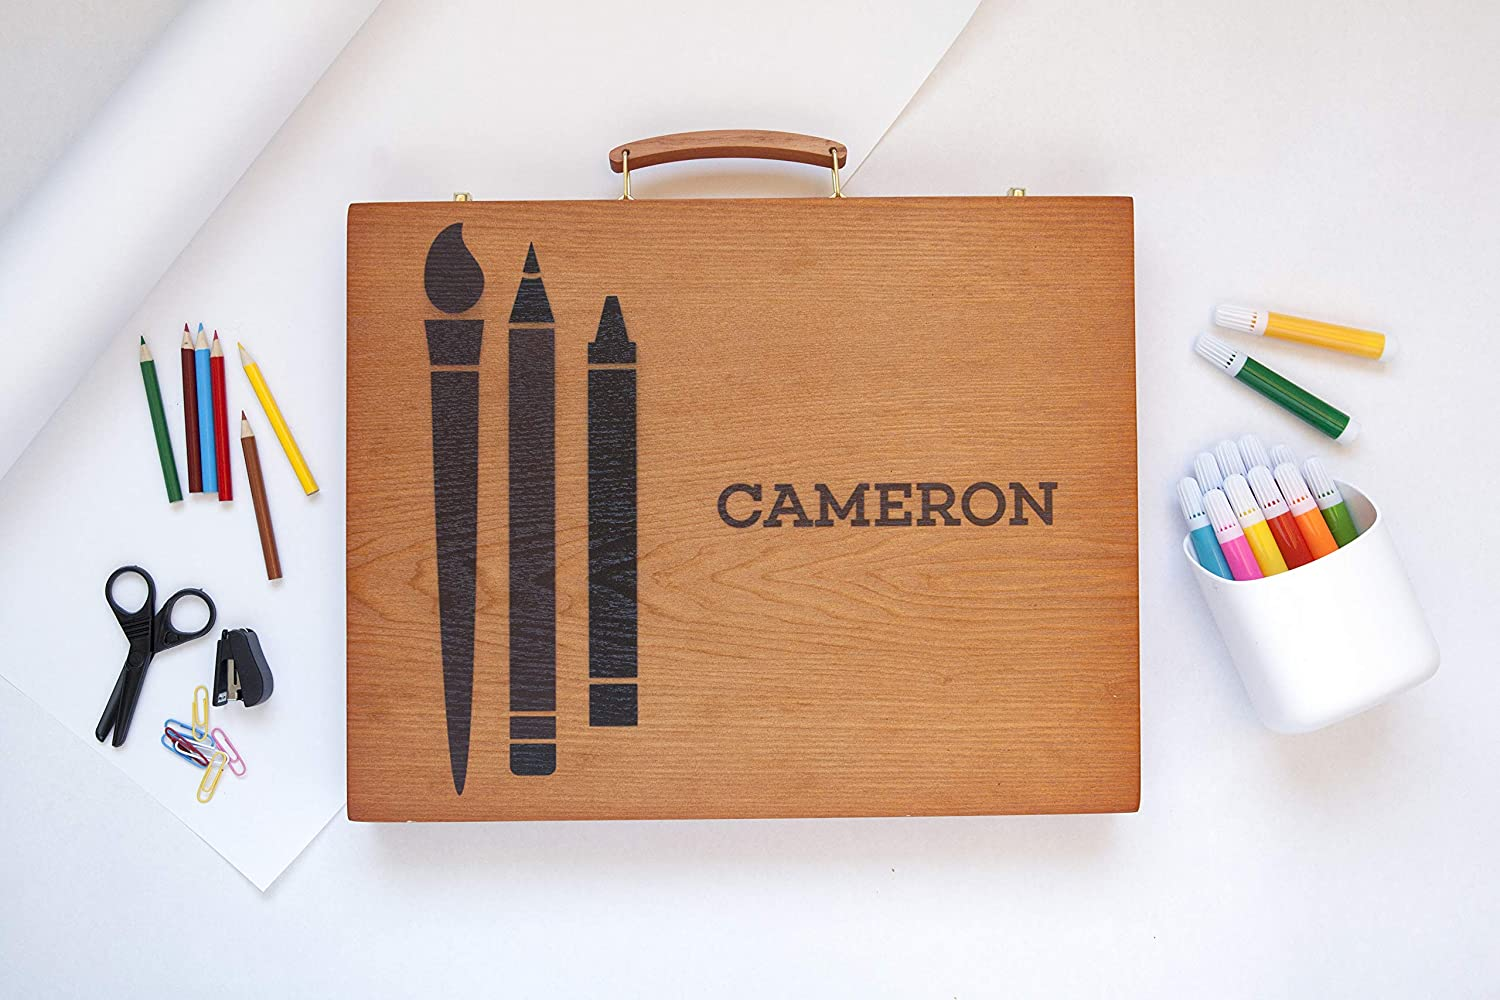 Personalized Wooden Case Art Supplies For Kids 150 Piece Arts And Craft Gift Set For Kids Artists Art Kit In Wooden Box Mason Design Box